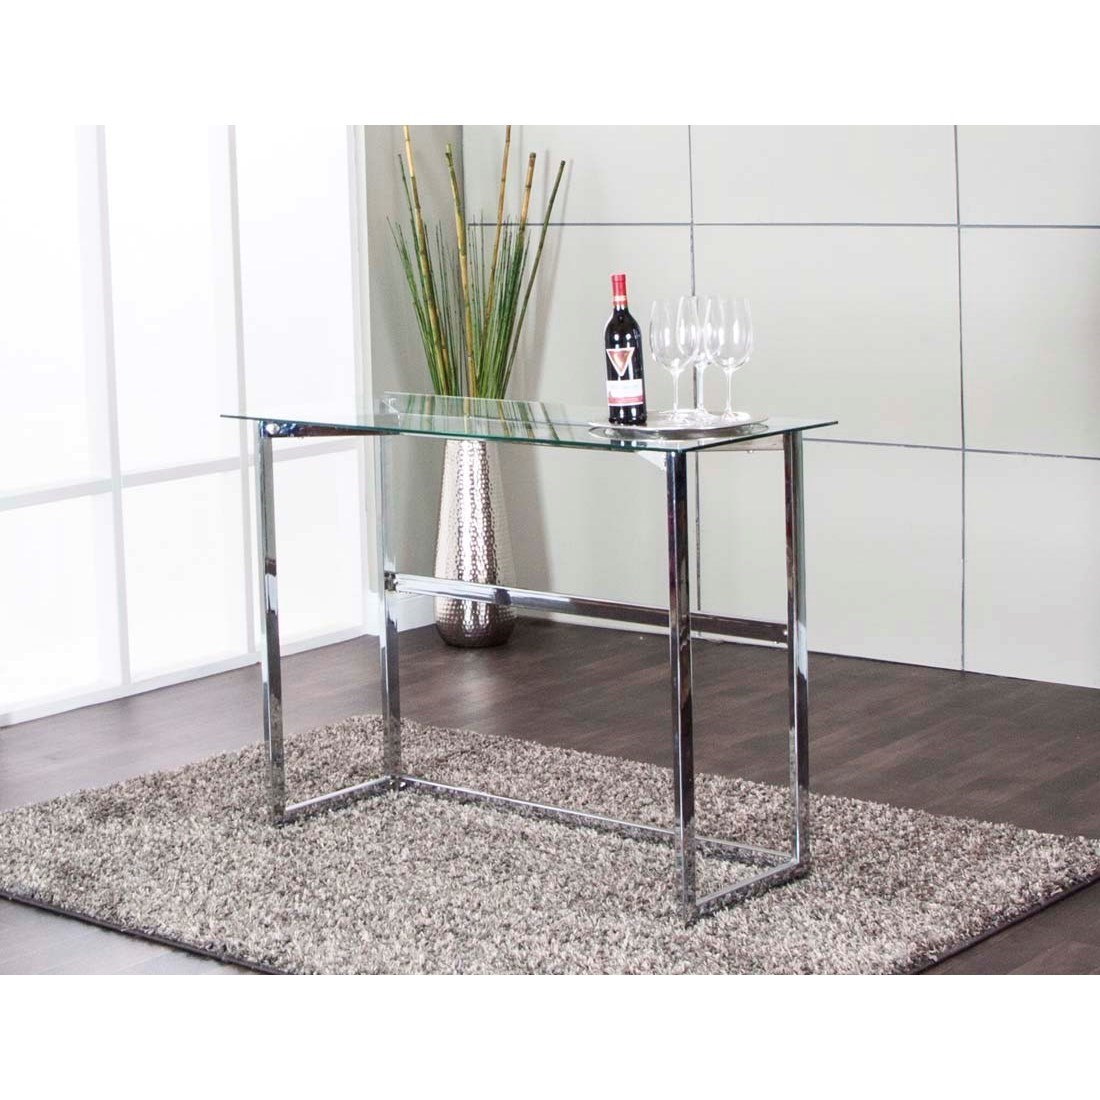 Abbott Counter Height Dining Table by Cramco, Inc at Lapeer Furniture & Mattress Center